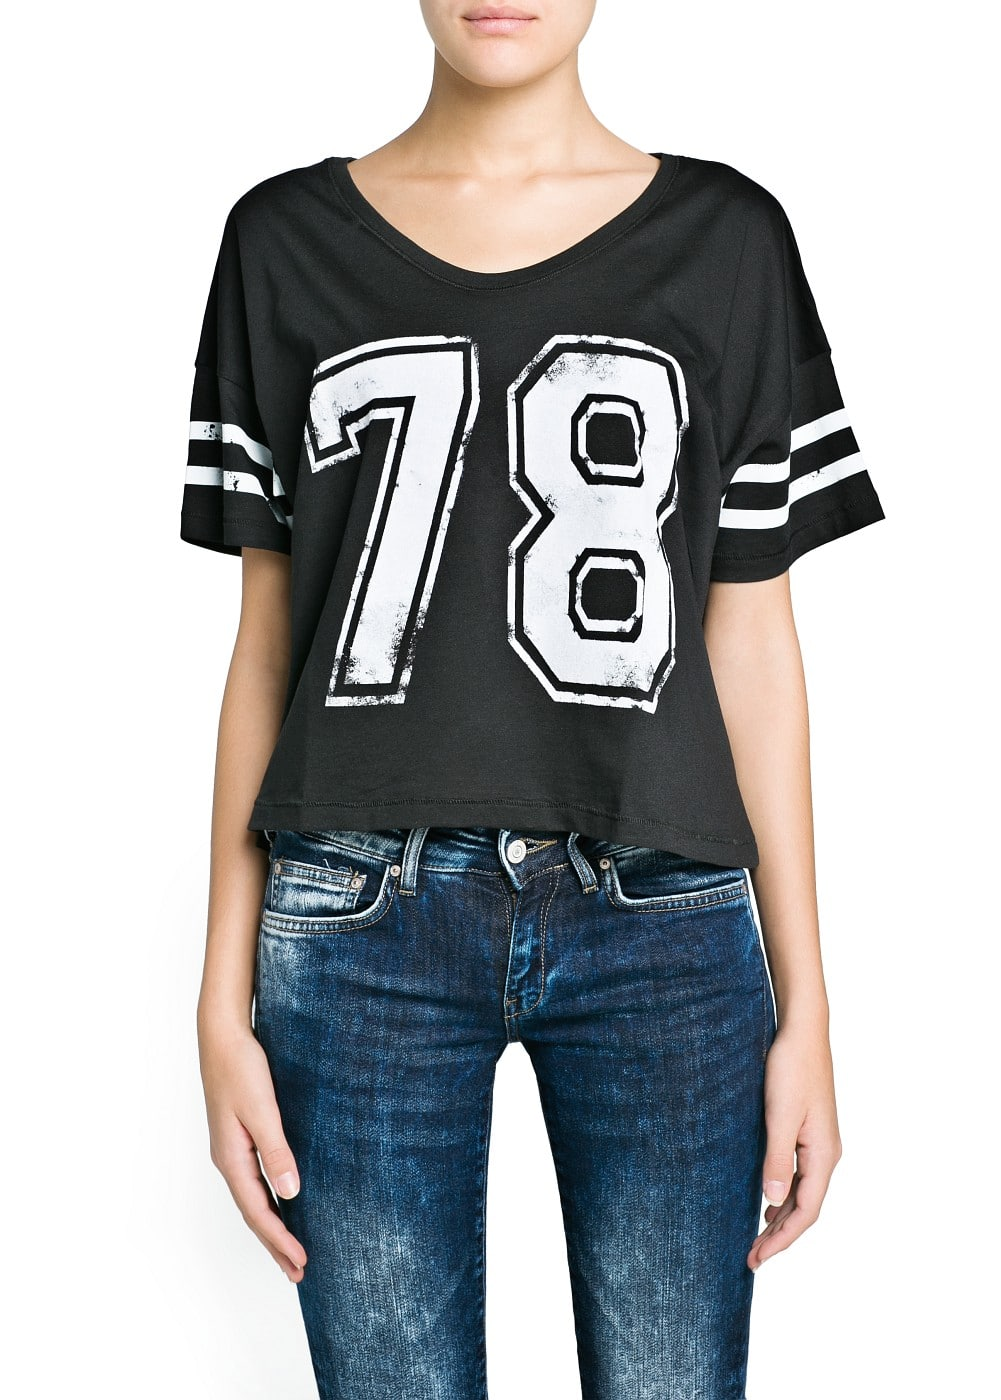 College cropped t-shirt